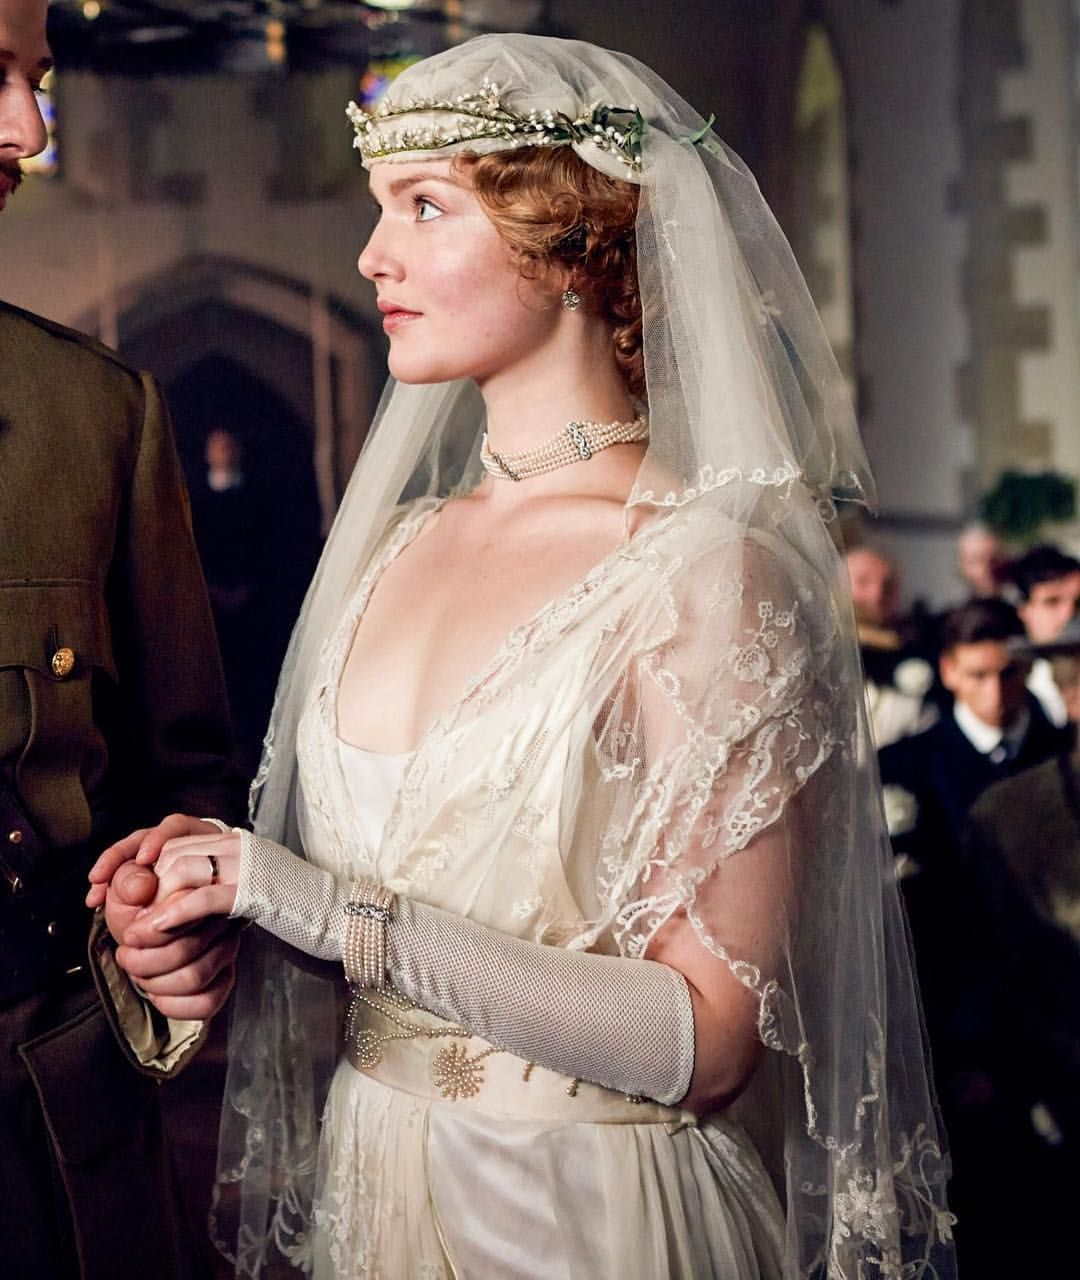 Lady Chatterley S Lover How Stunning Is Holliday Grainger Here This Is One Of My Favourite Period Drama Wedding Dresse Peliculas De Epoca Bodas Moda